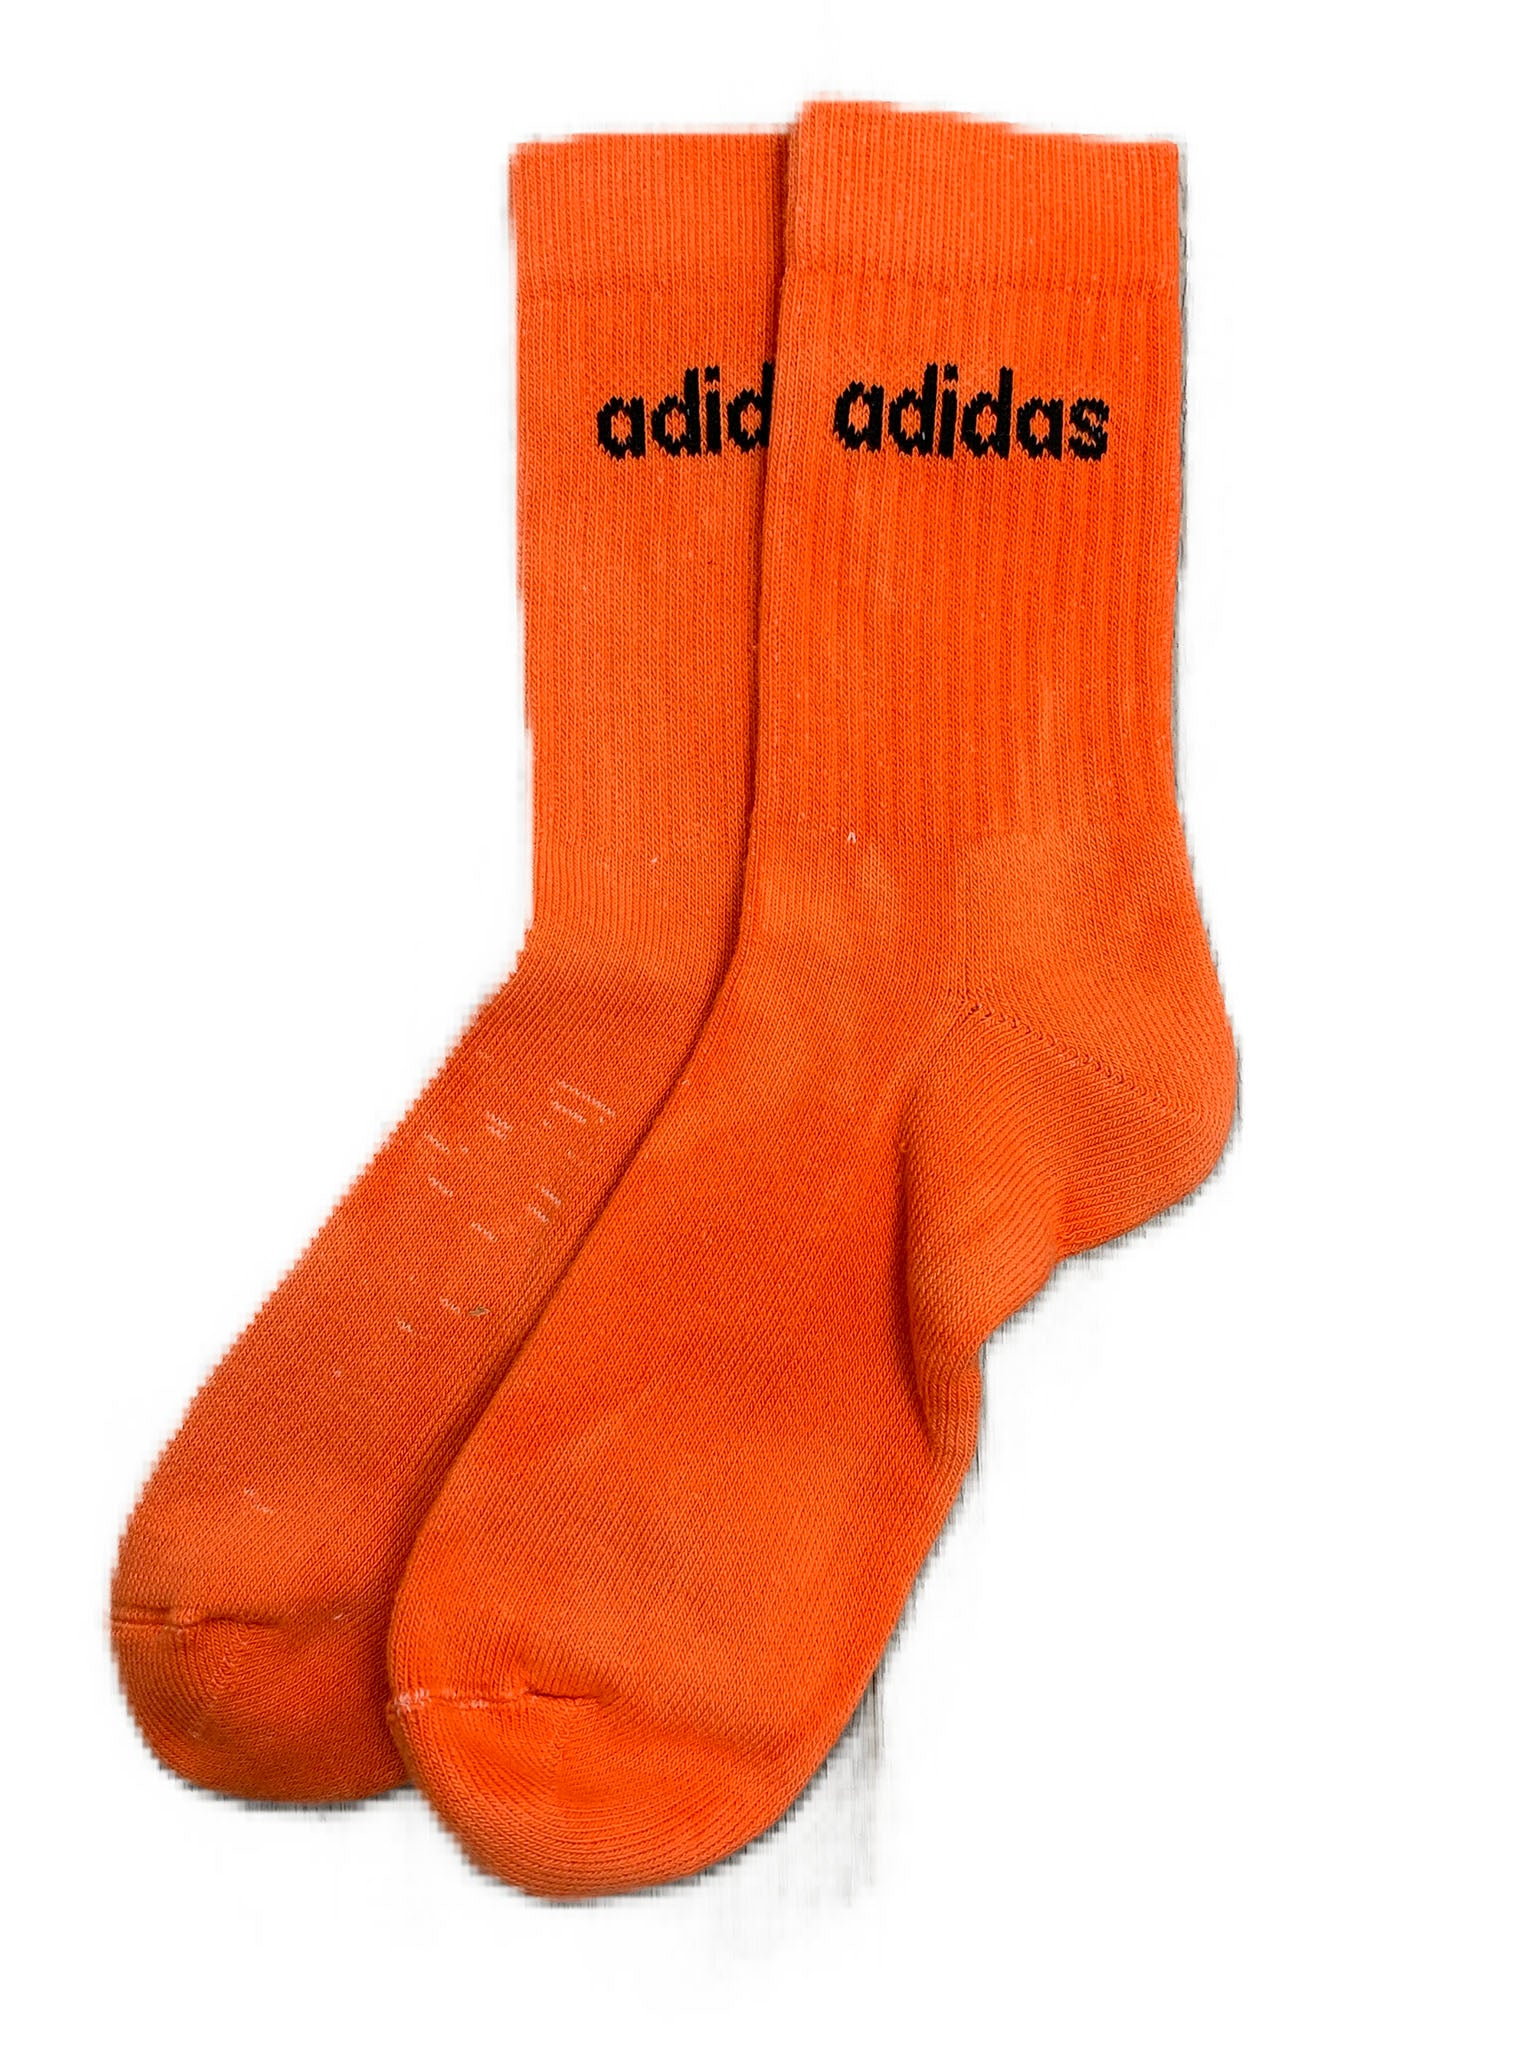 Adidas Hand Dyed Socks - Fresh Orange